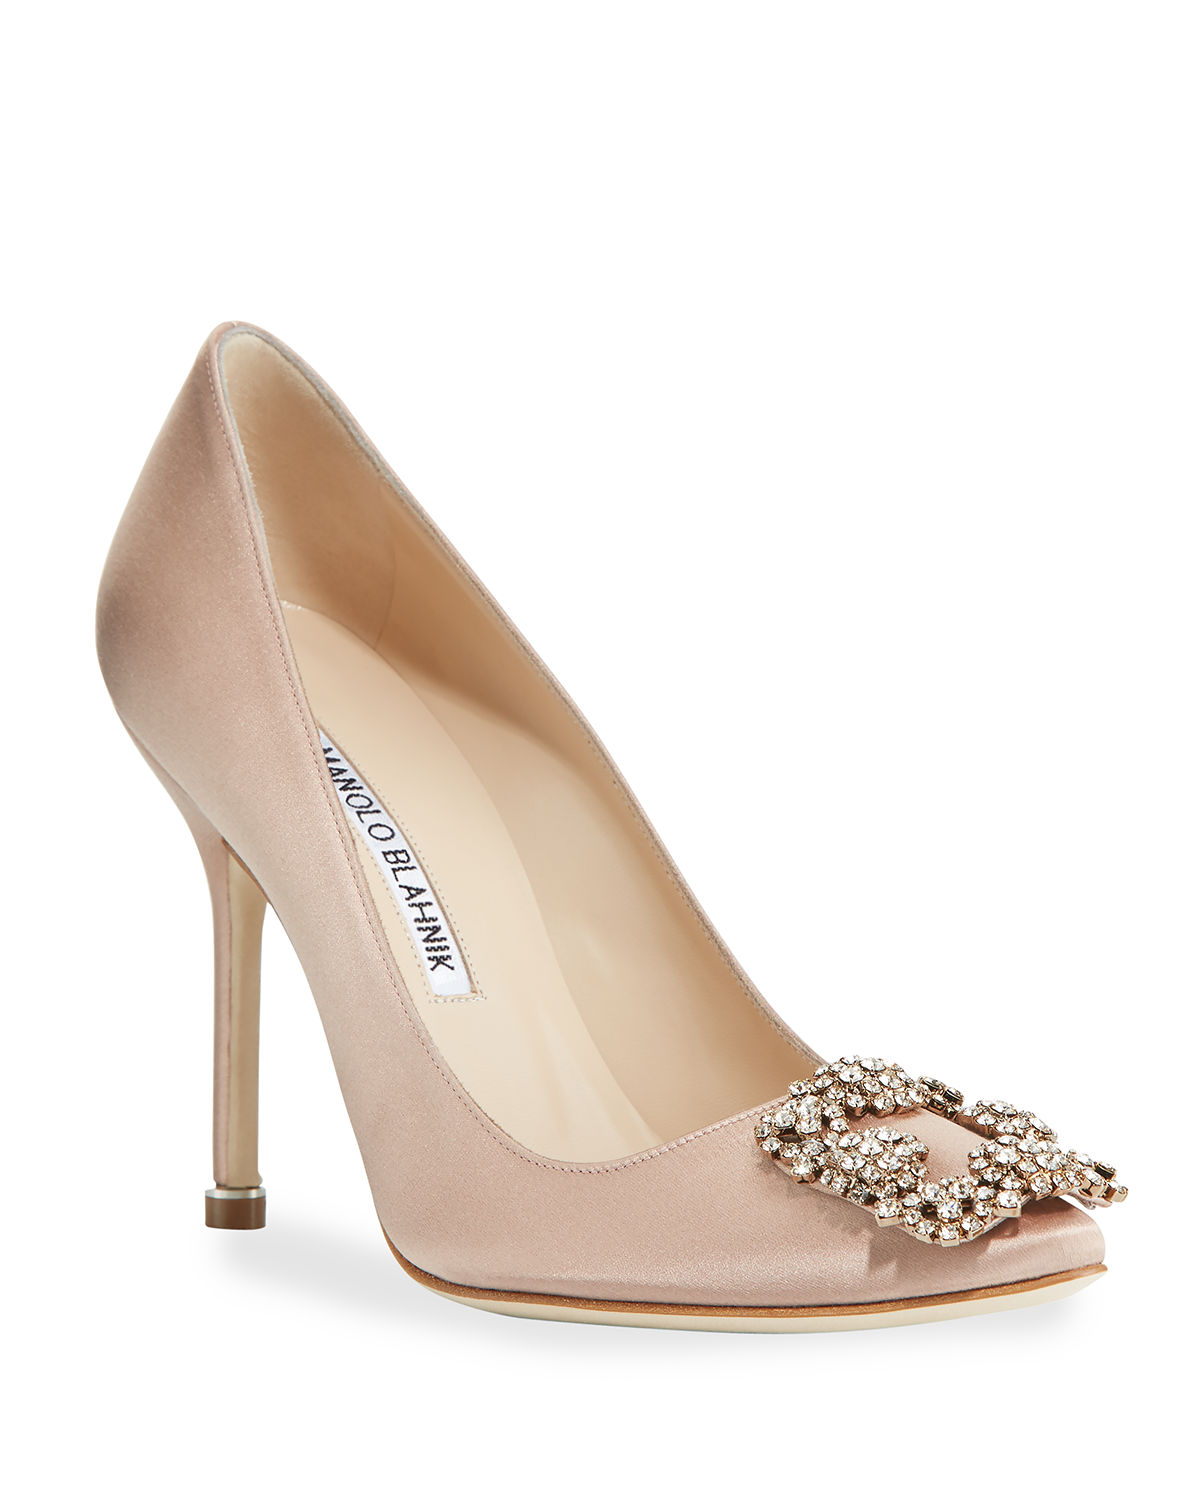 c2050023a3775 Manolo Blahnik Hangisi Crystal-Buckle Satin 105Mm Pump In Flesh Satin